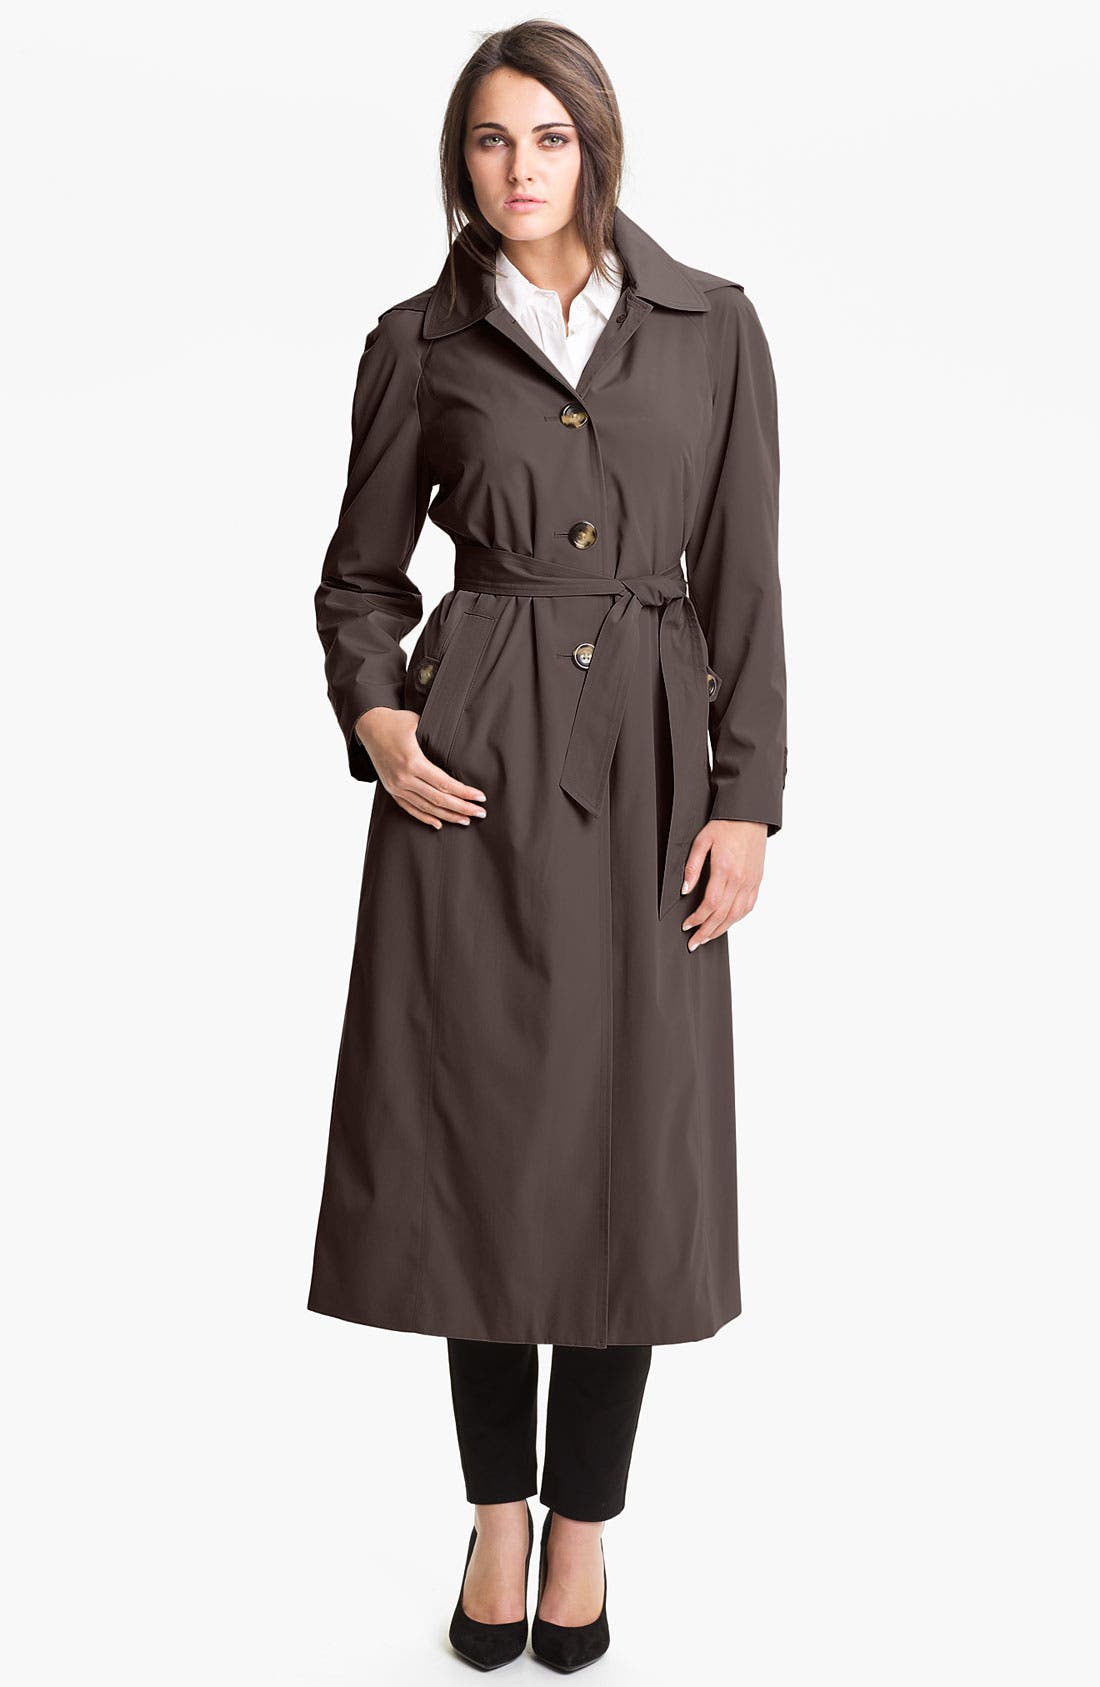 Alternate Image 1 Selected - London Fog Raglan Sleeve Raincoat with Detachable Hood